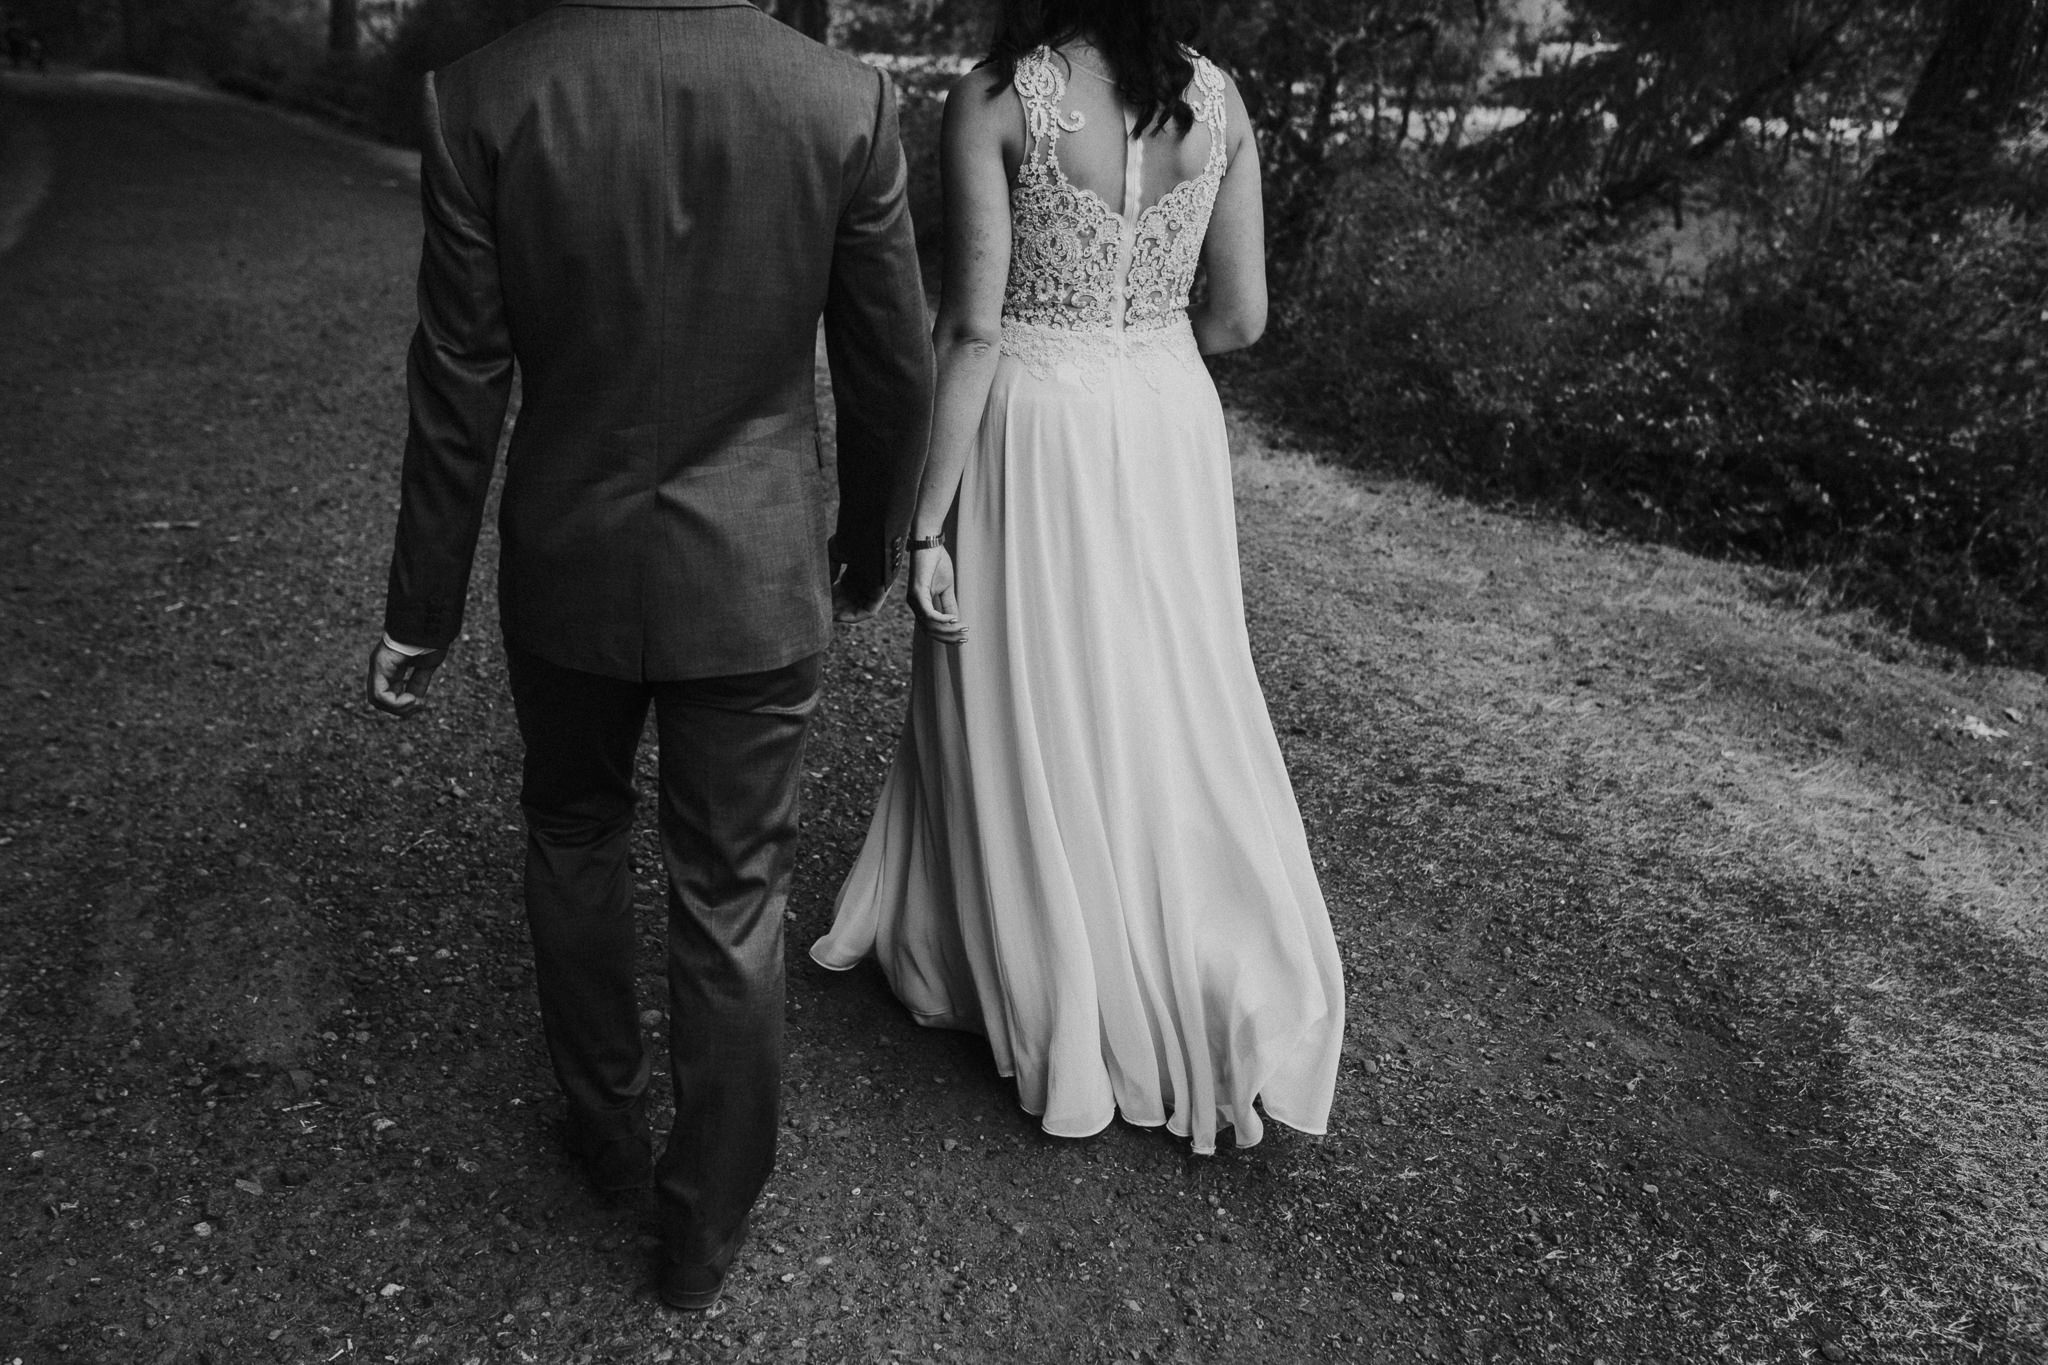 Port-Orchard-Manchester-Park-elopement-Bride-And-Groom-125.jpg